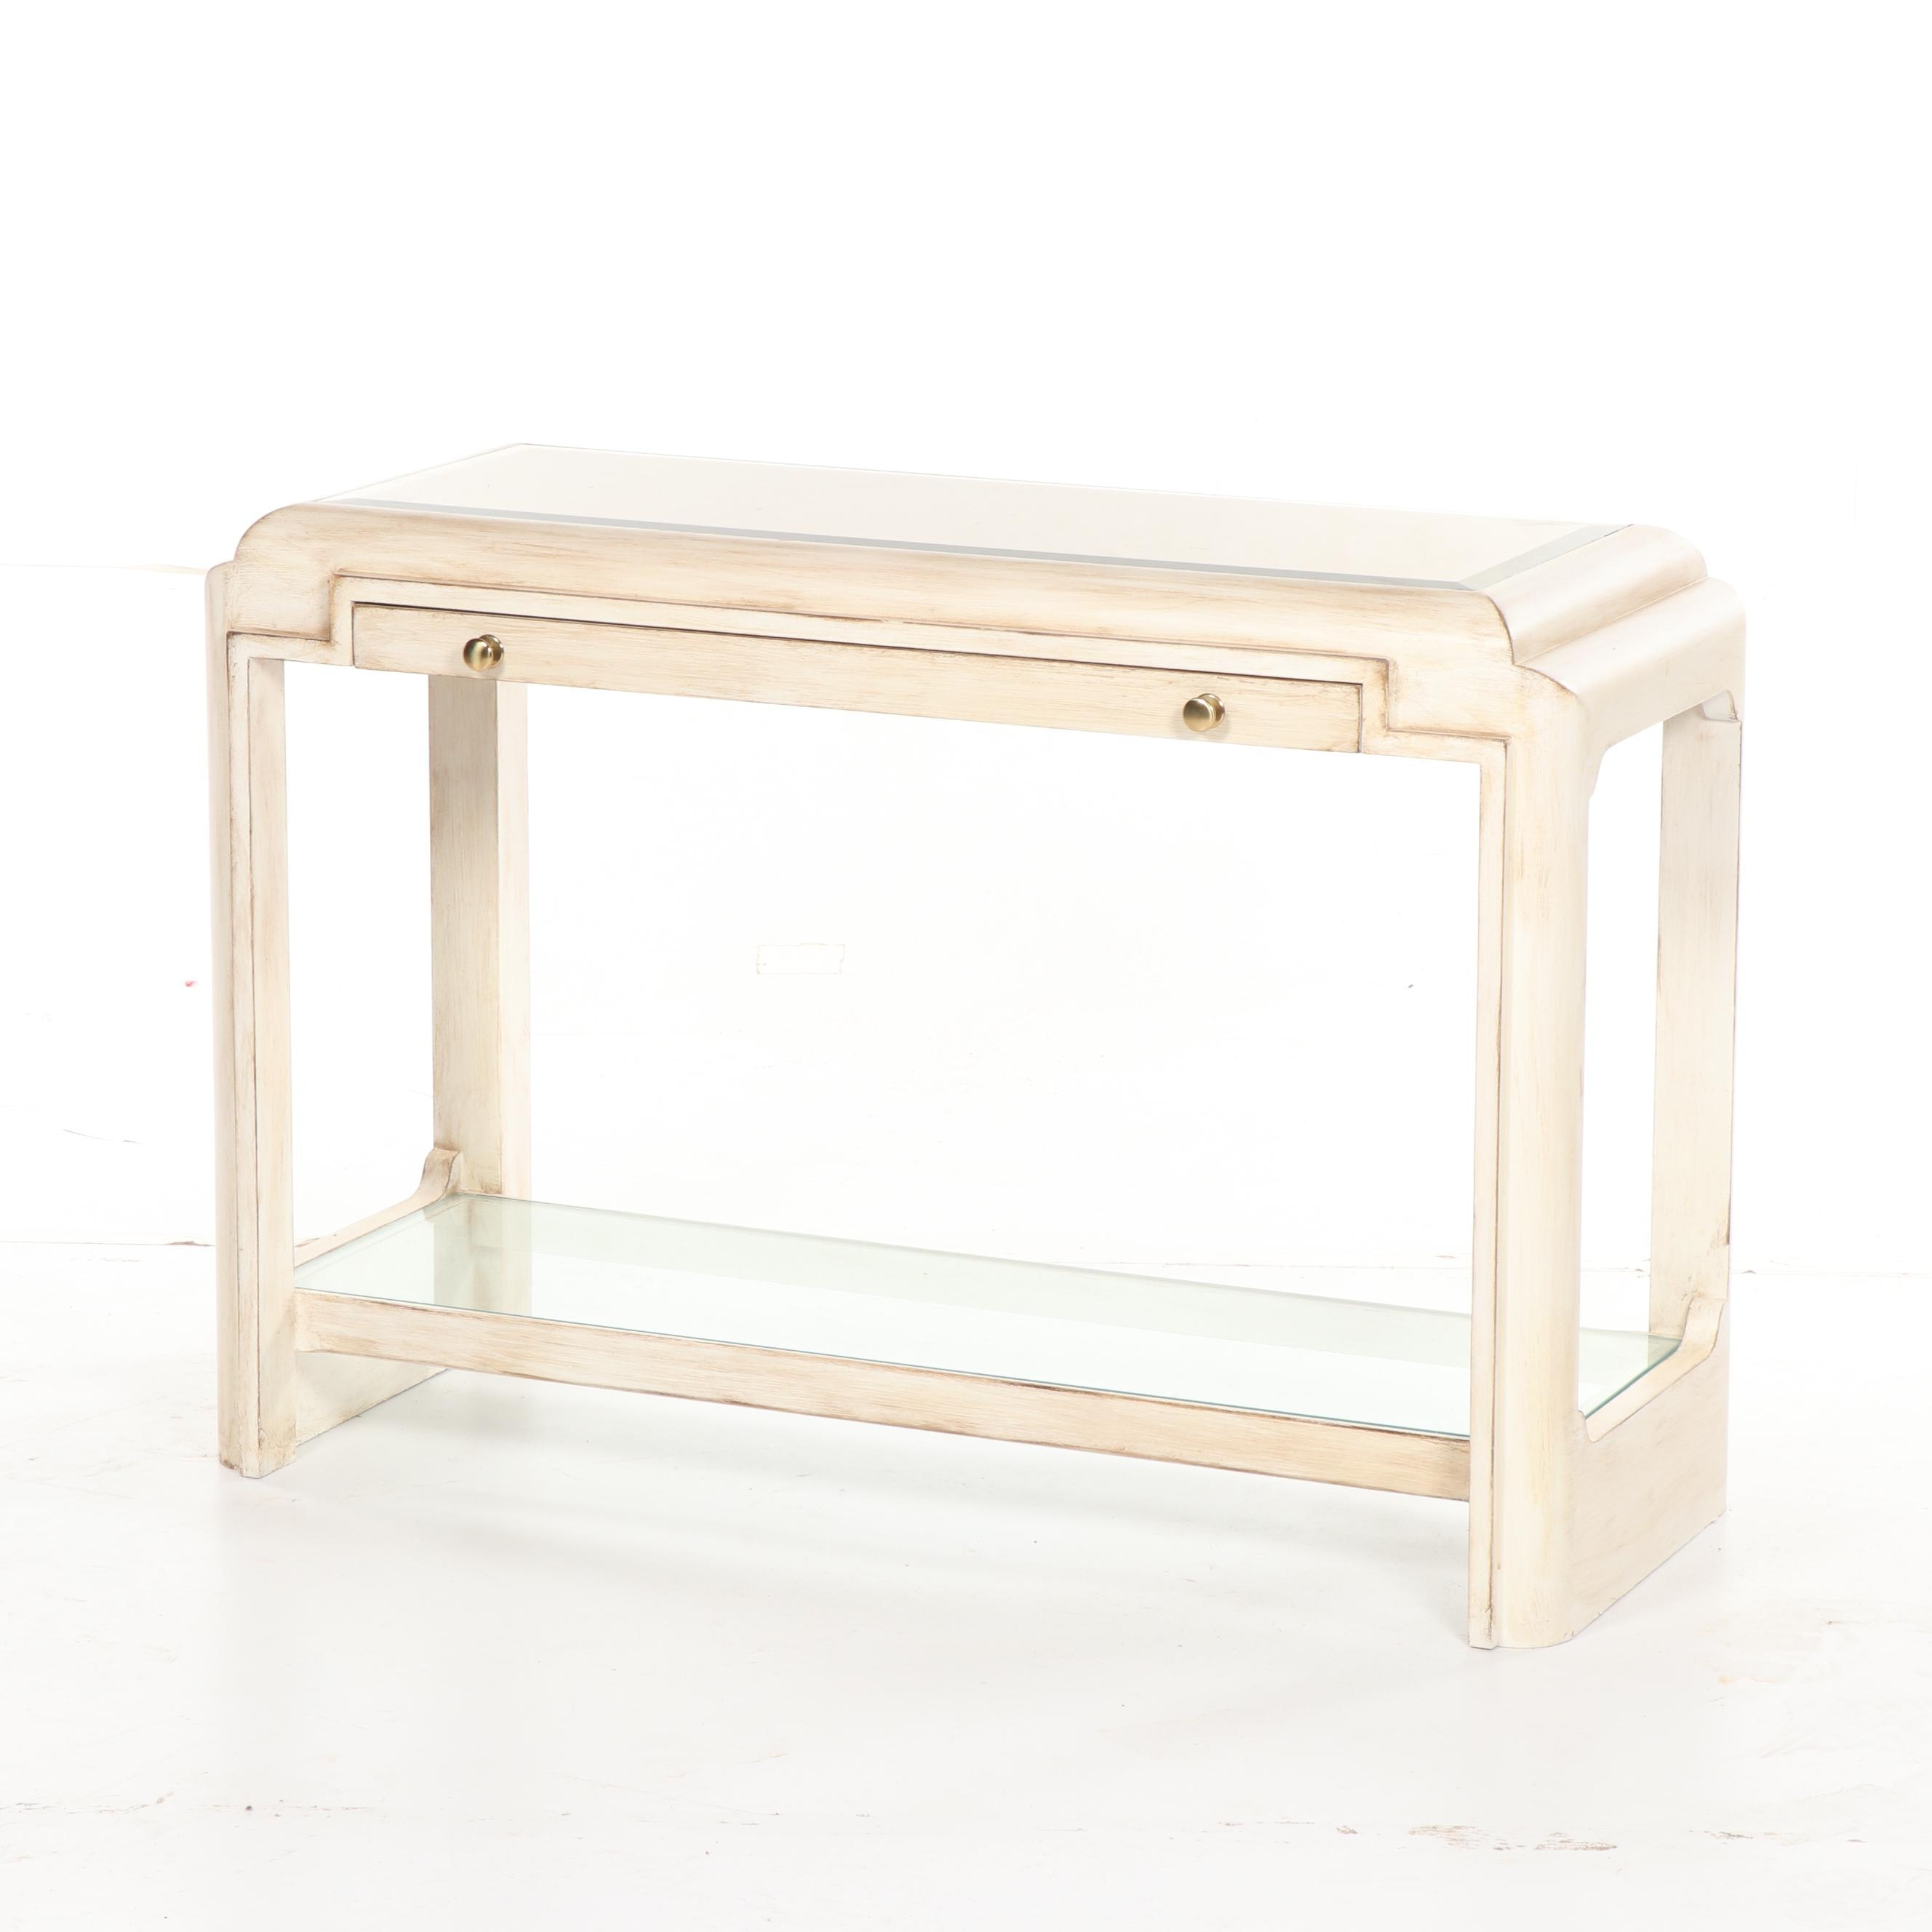 Contemporary Painted Wood Console Table by Romweber Furniture